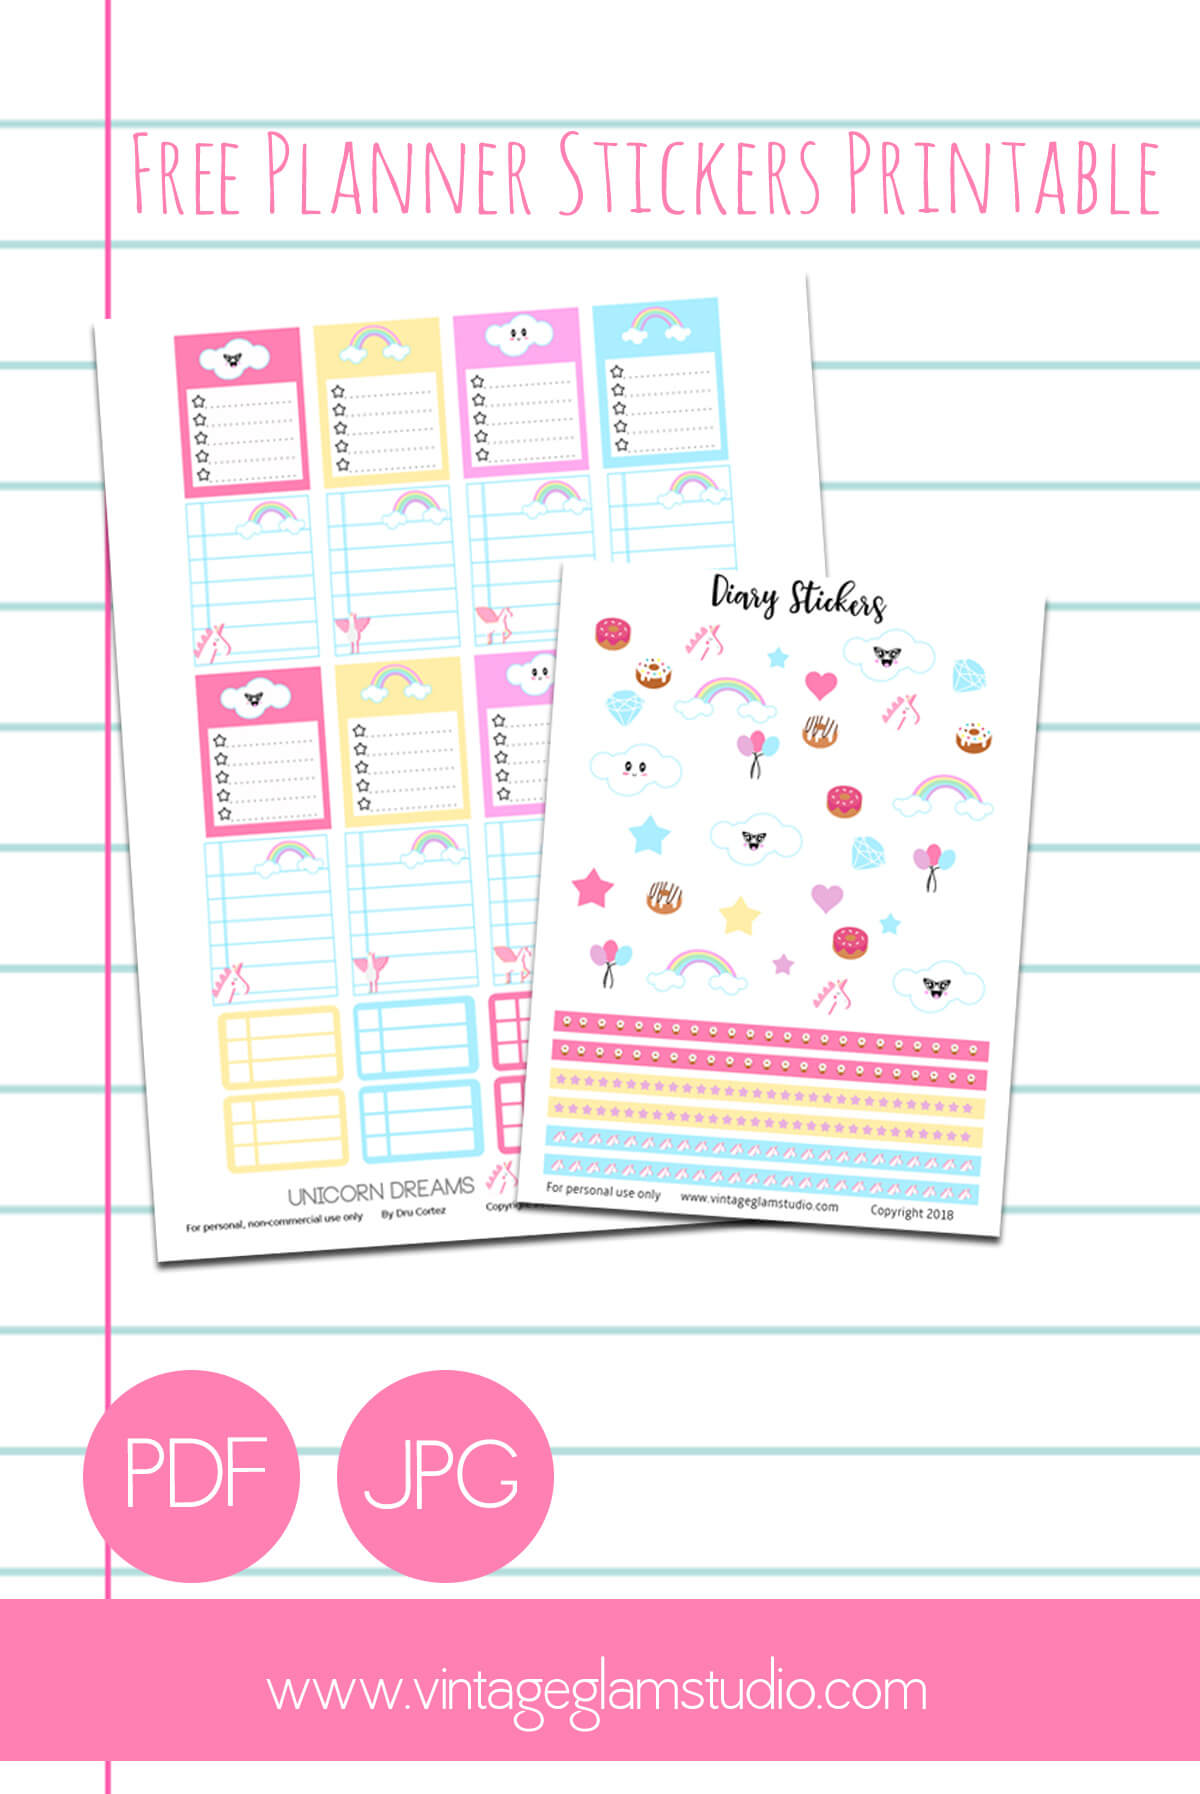 graphic about Free Planner Printable Stickers known as Unicorn Wants-Free of charge Planner Stickers Printable - Basic